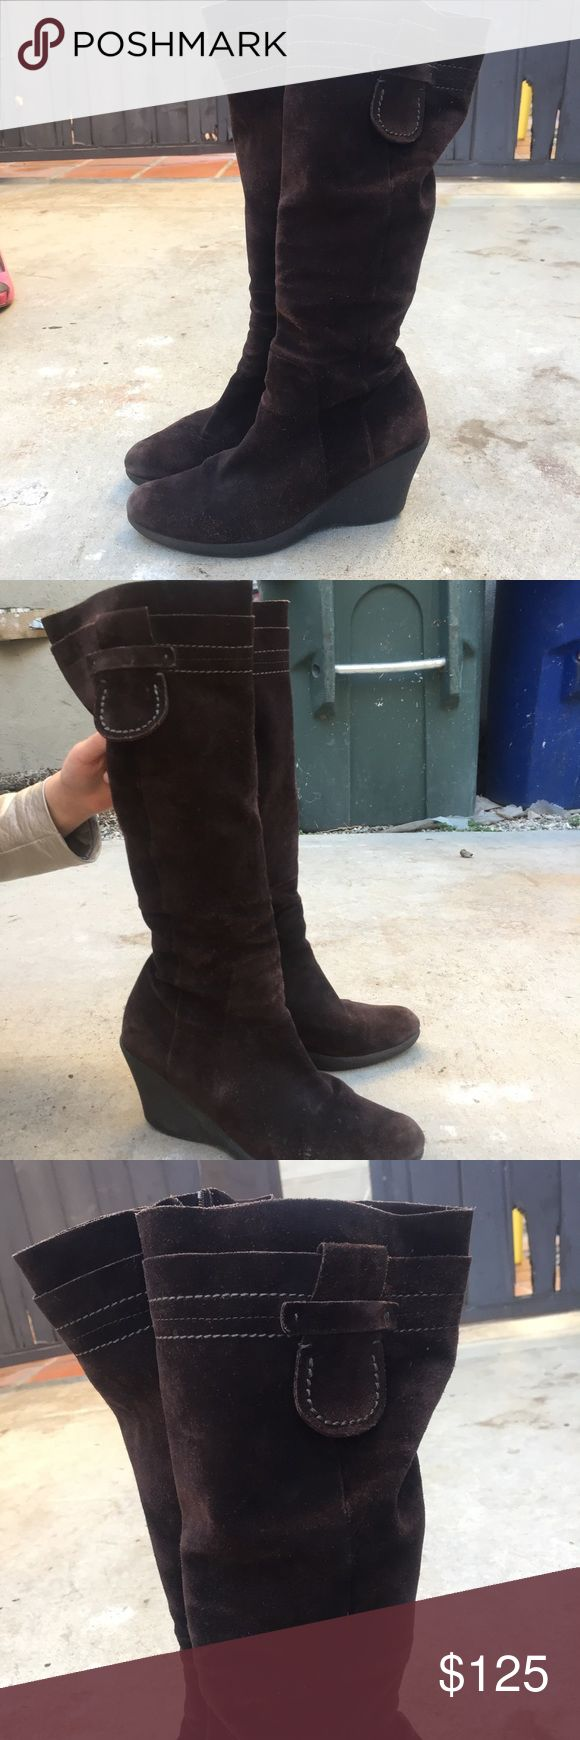 Charles David Brown Knee Boots with wedges Adorable Charles David knee boots with wedges. Worn a few times as seen in pictures. Good condition. Size 39. Charles David Shoes Heeled Boots